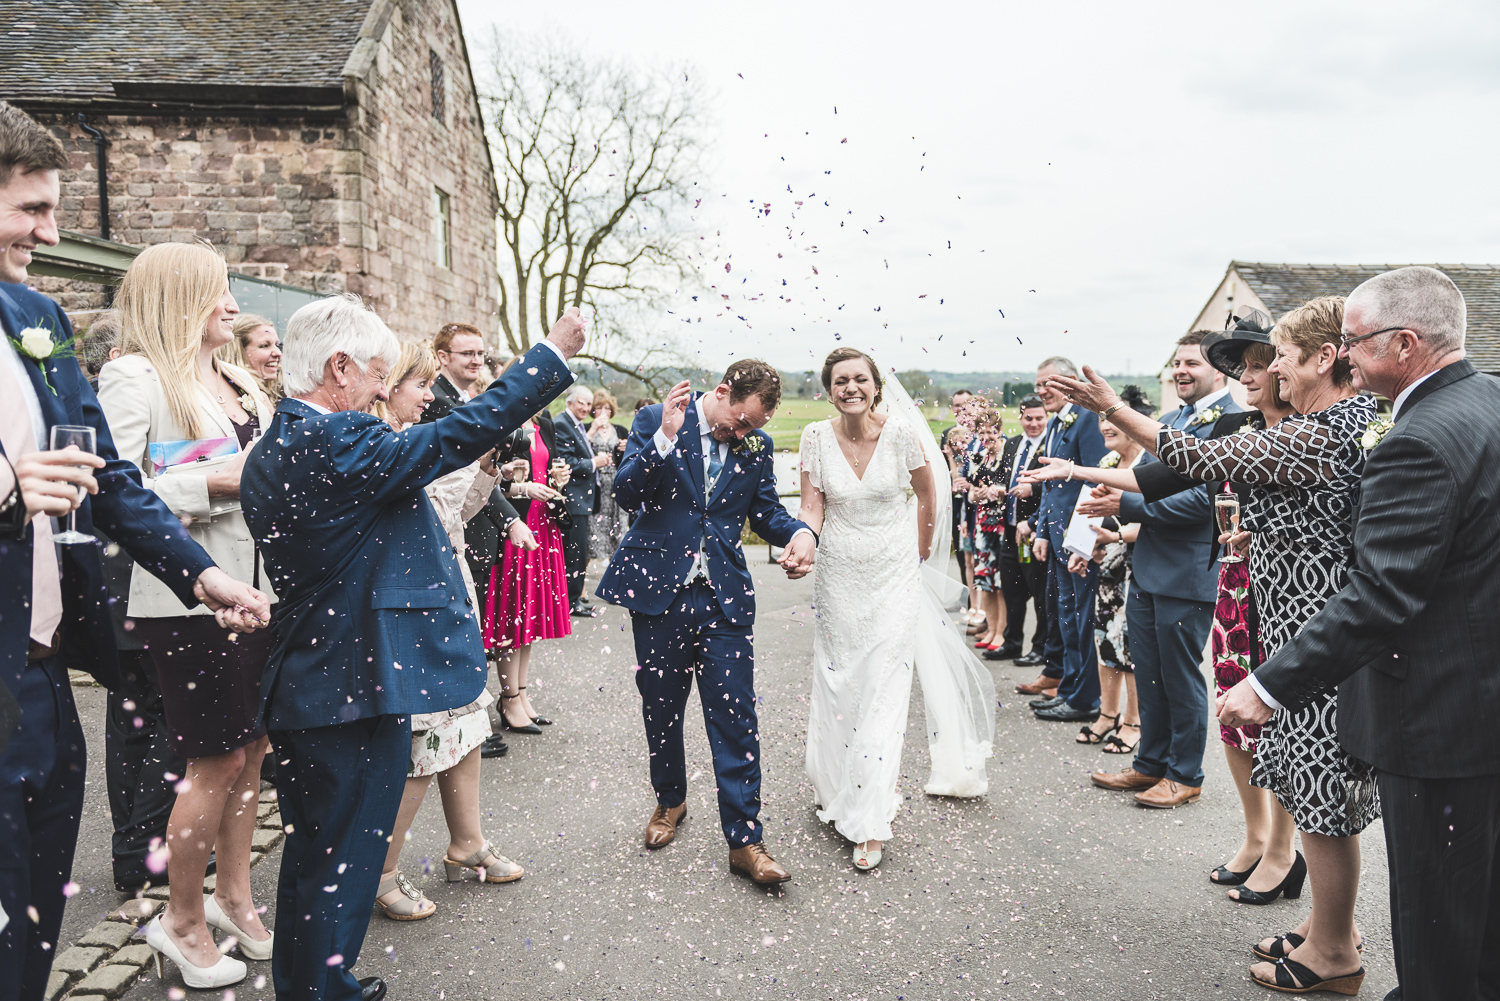 The Ashes, Staffordshire - Emma Hare Photography-21.jpg